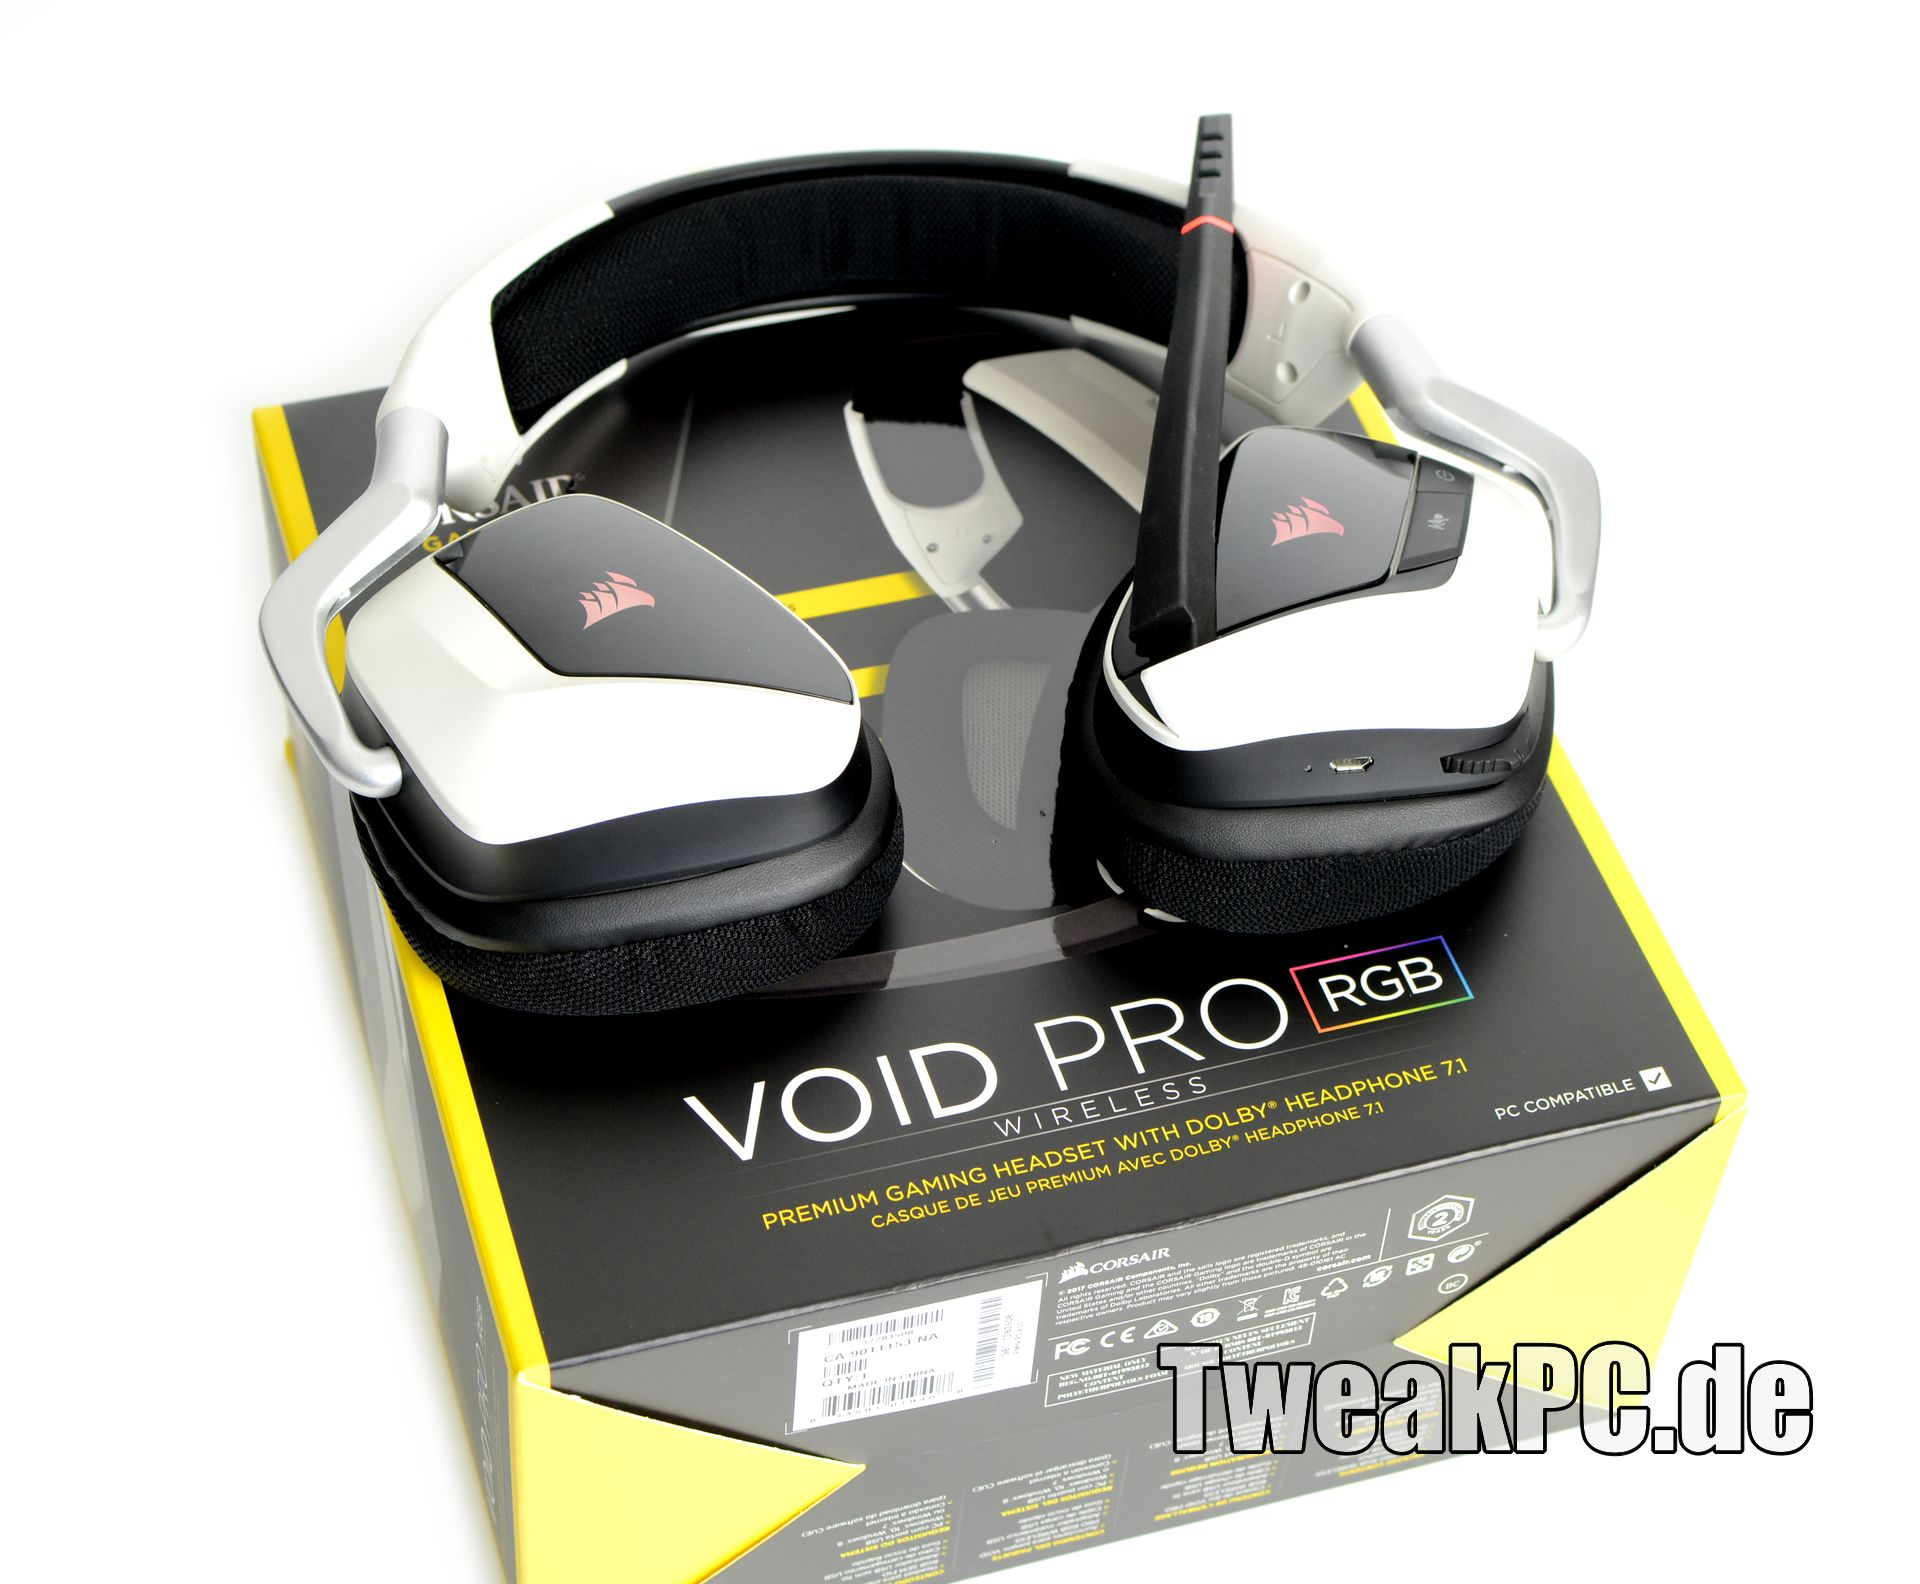 corsair void pro rgb wireless gaming headset im test. Black Bedroom Furniture Sets. Home Design Ideas